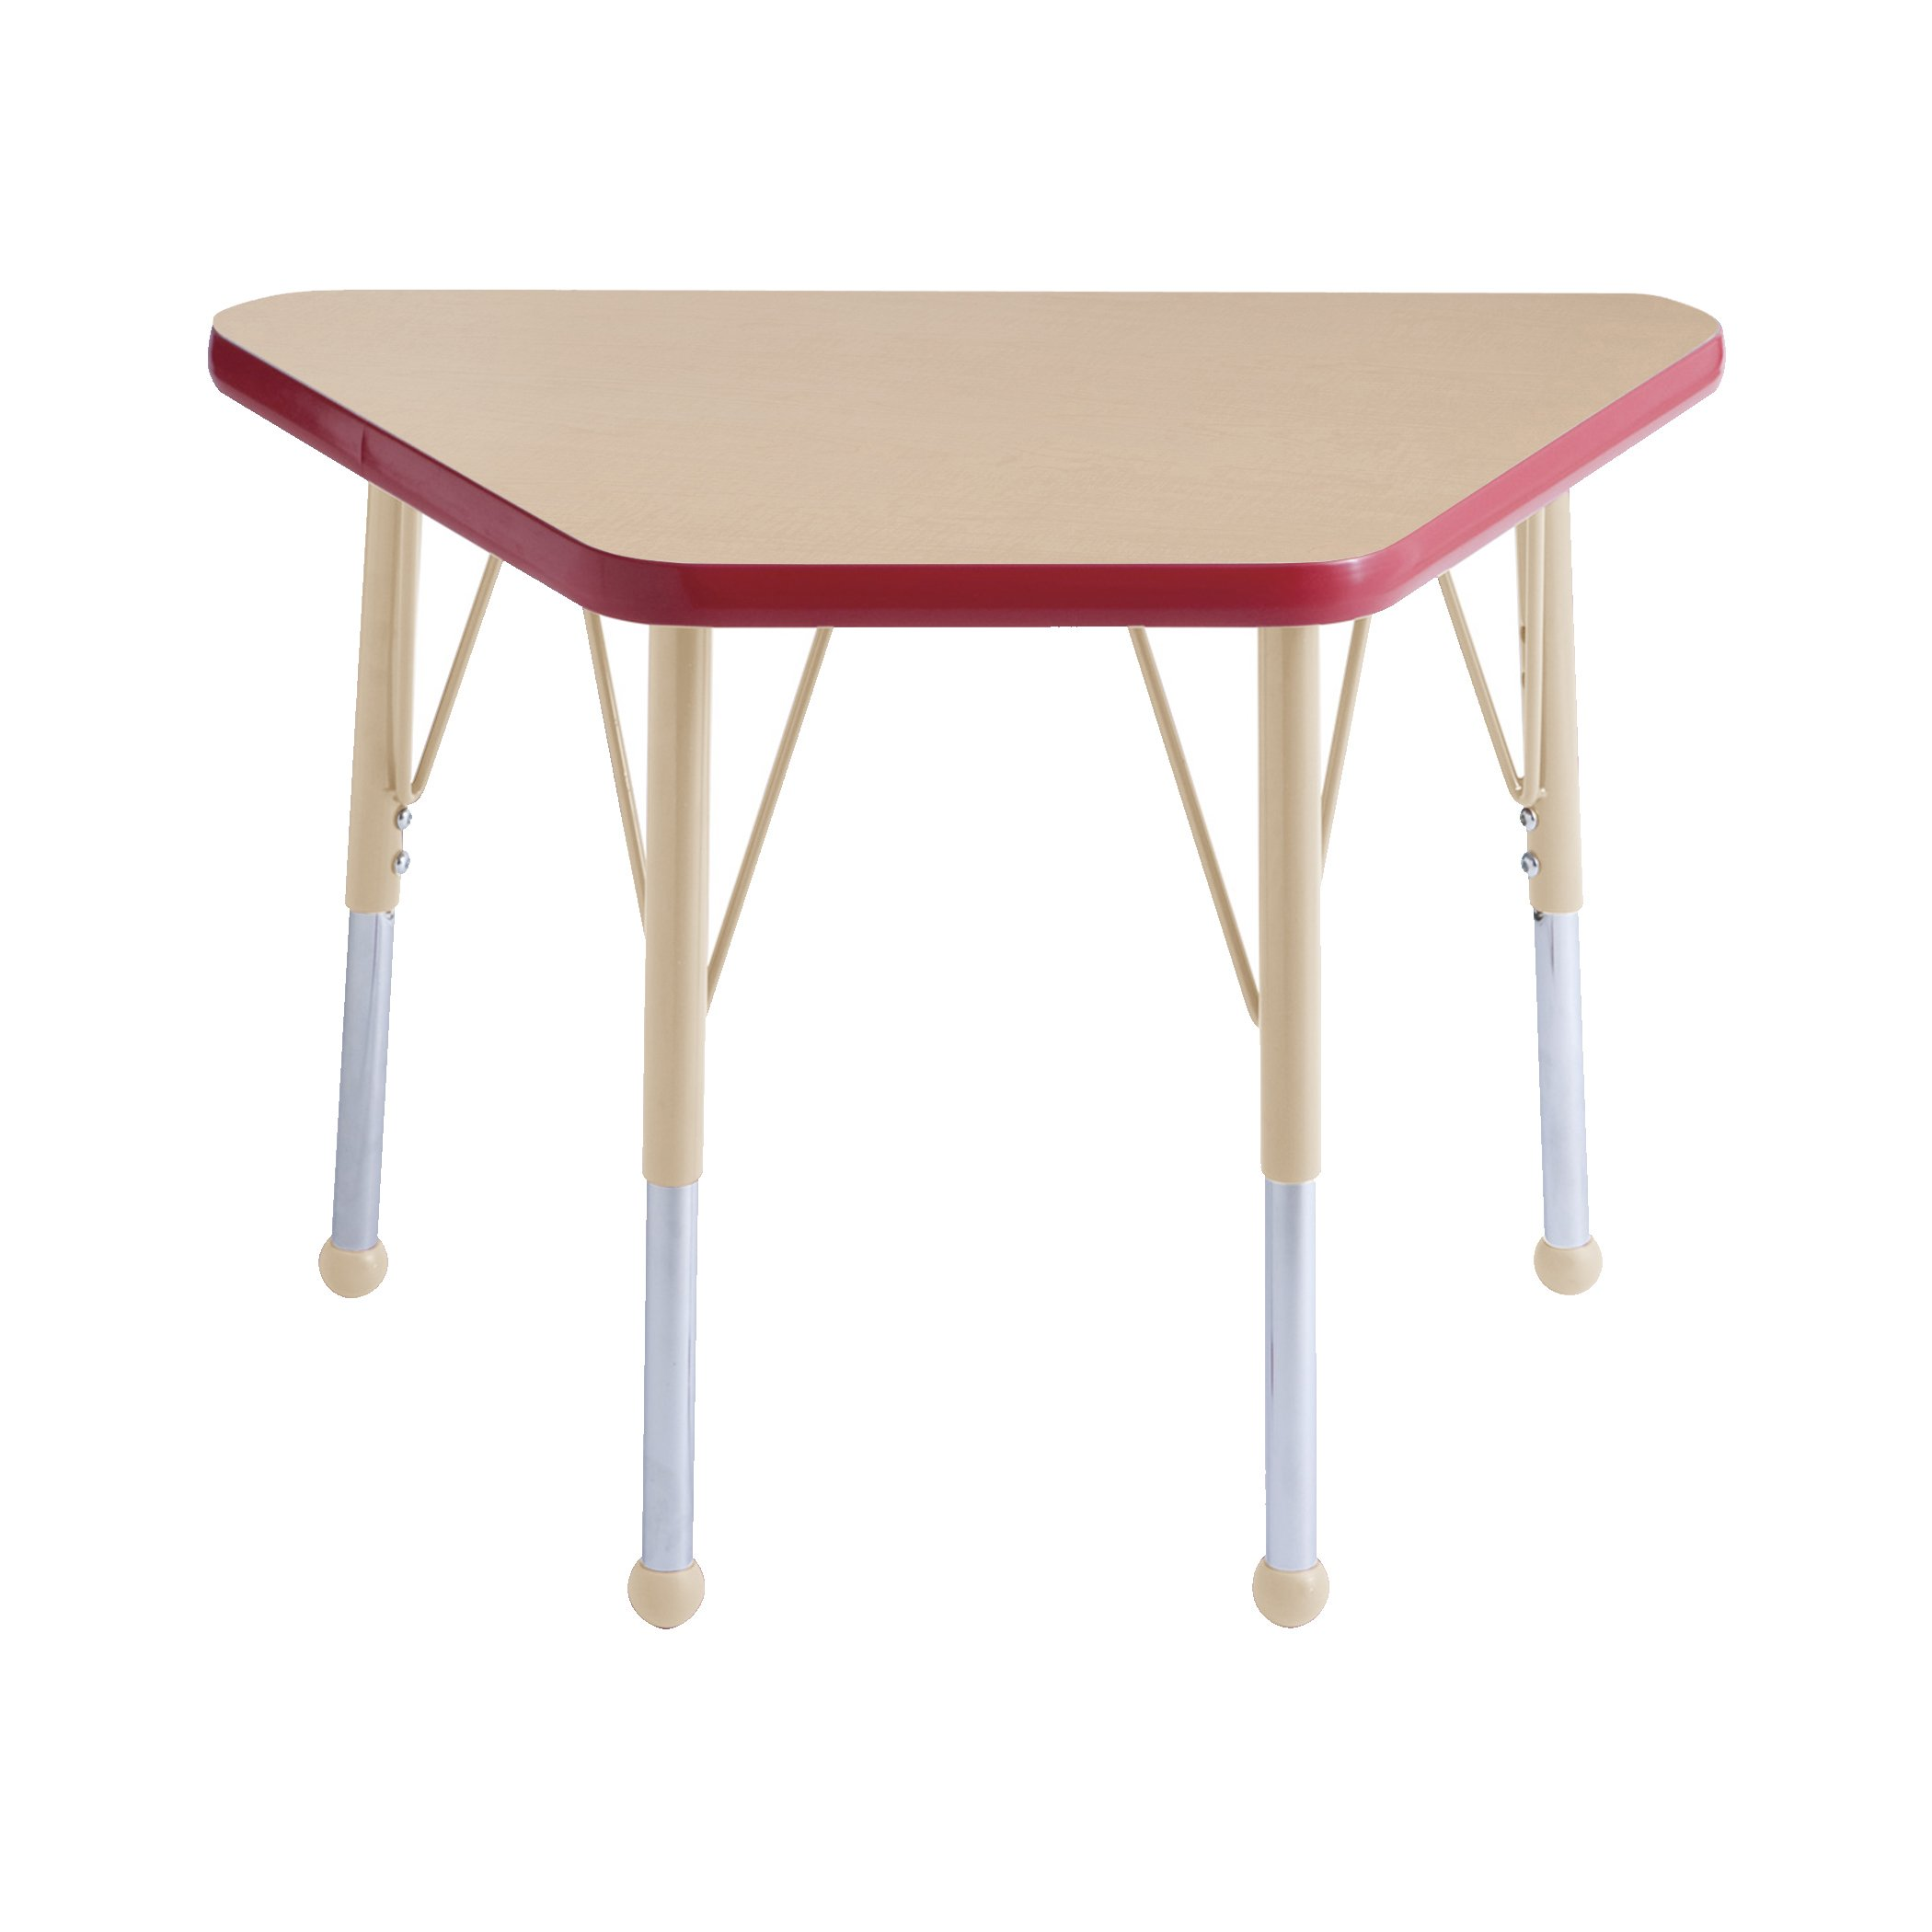 ECR4Kids Everyday T-Mold 18'' x 30'' Trapezoid Activity School Table, Standard Legs w/Ball Glides, Adjustable Height 19-30 inch (Maple/Red/Sand)